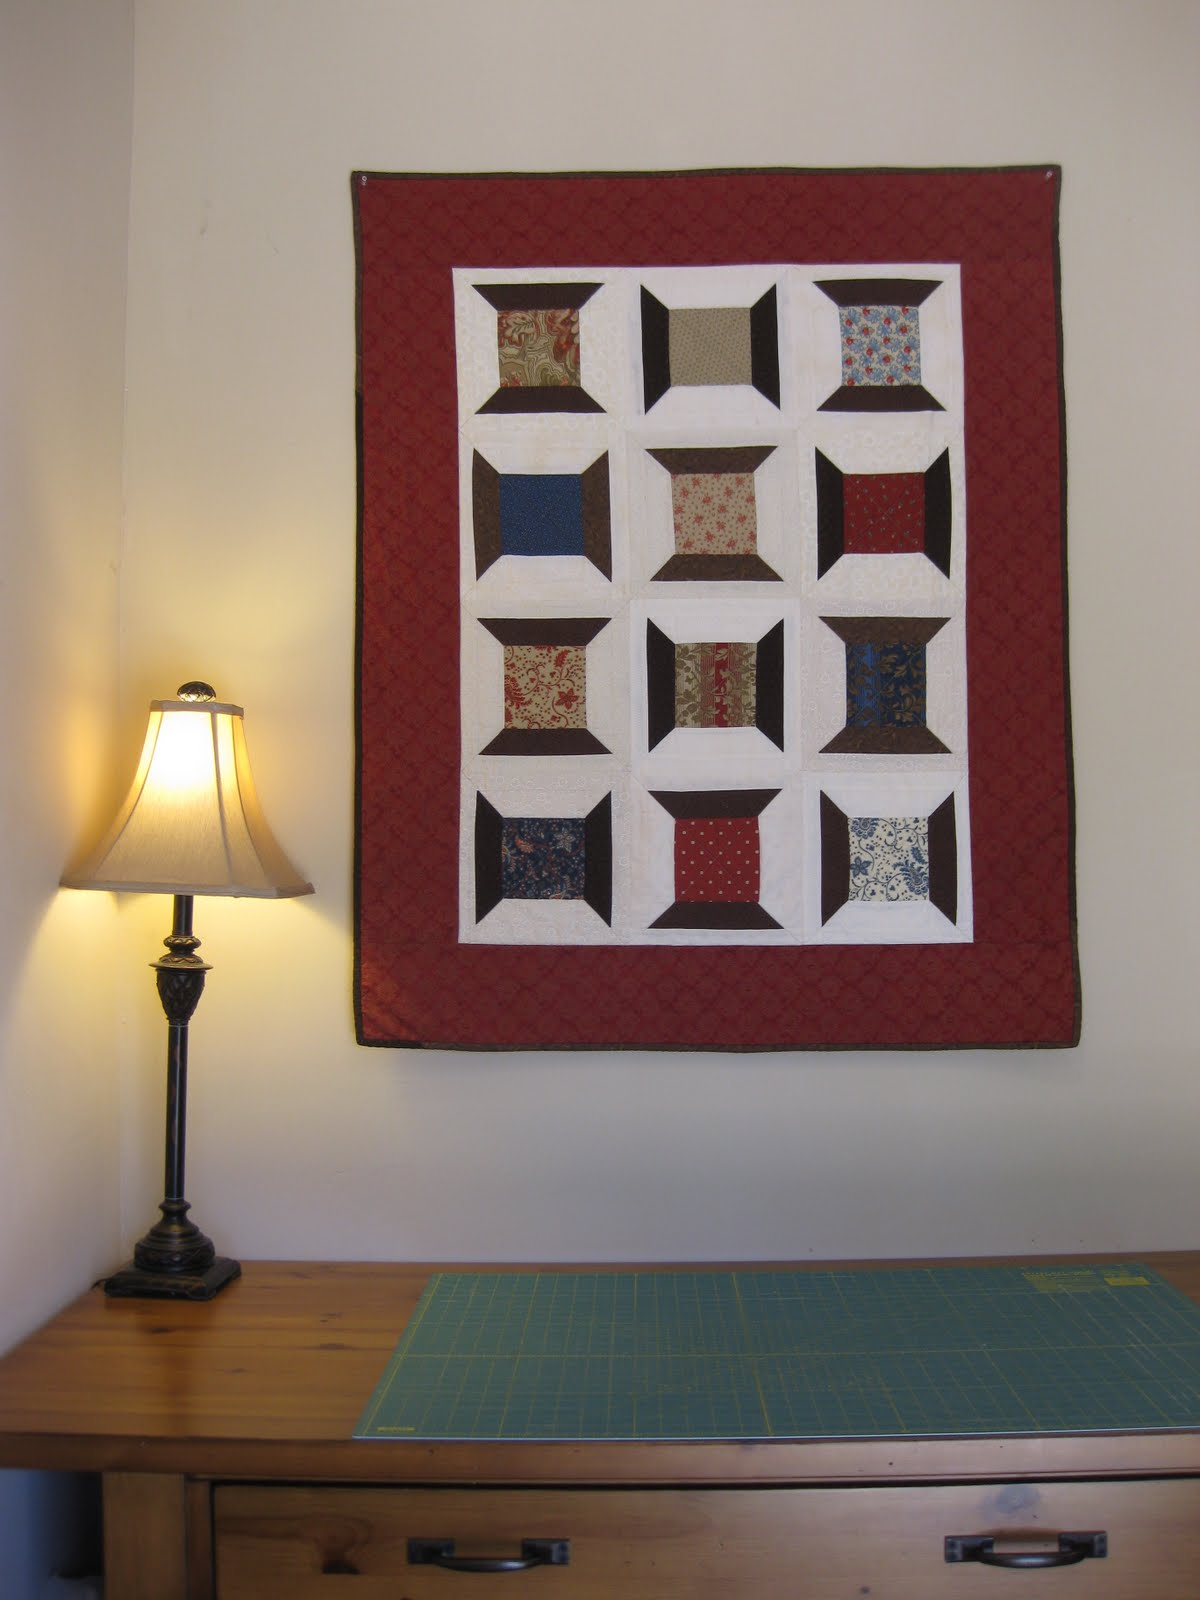 Quilt Pattern Spool of Thread http://youcansewtoo.blogspot.com/2010/04/spool-quilt.html